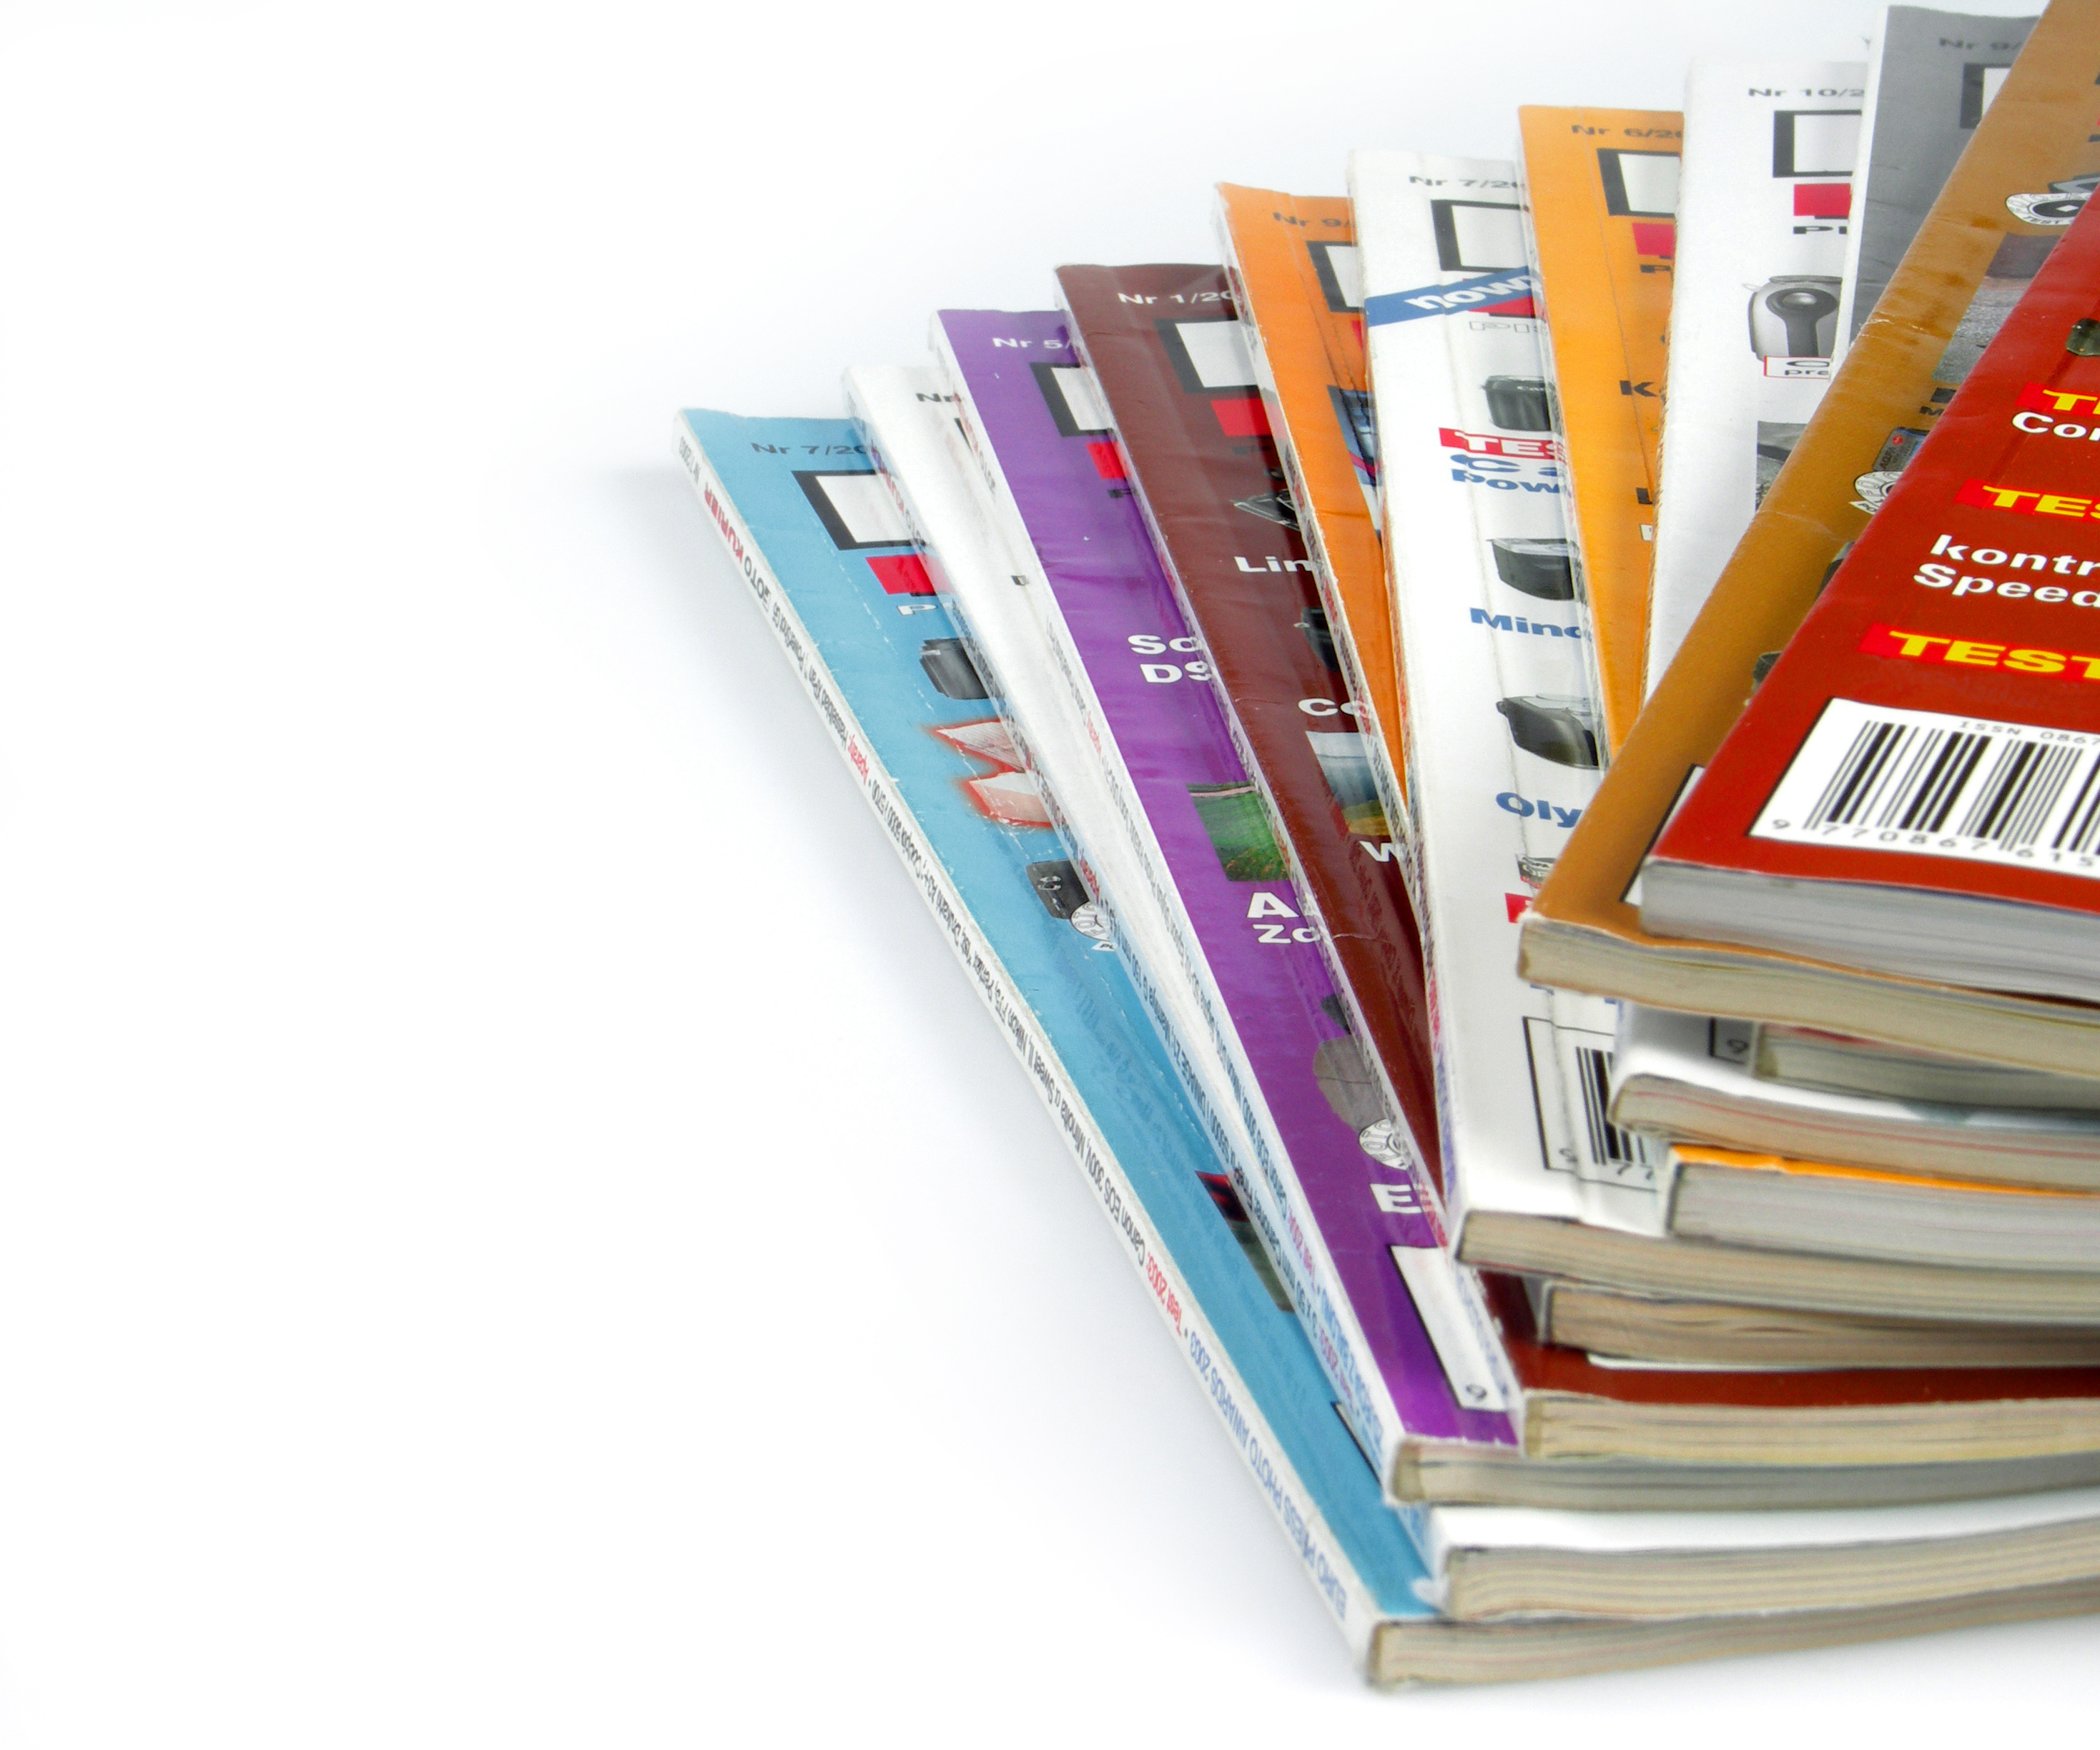 Image of a stack of magazines.